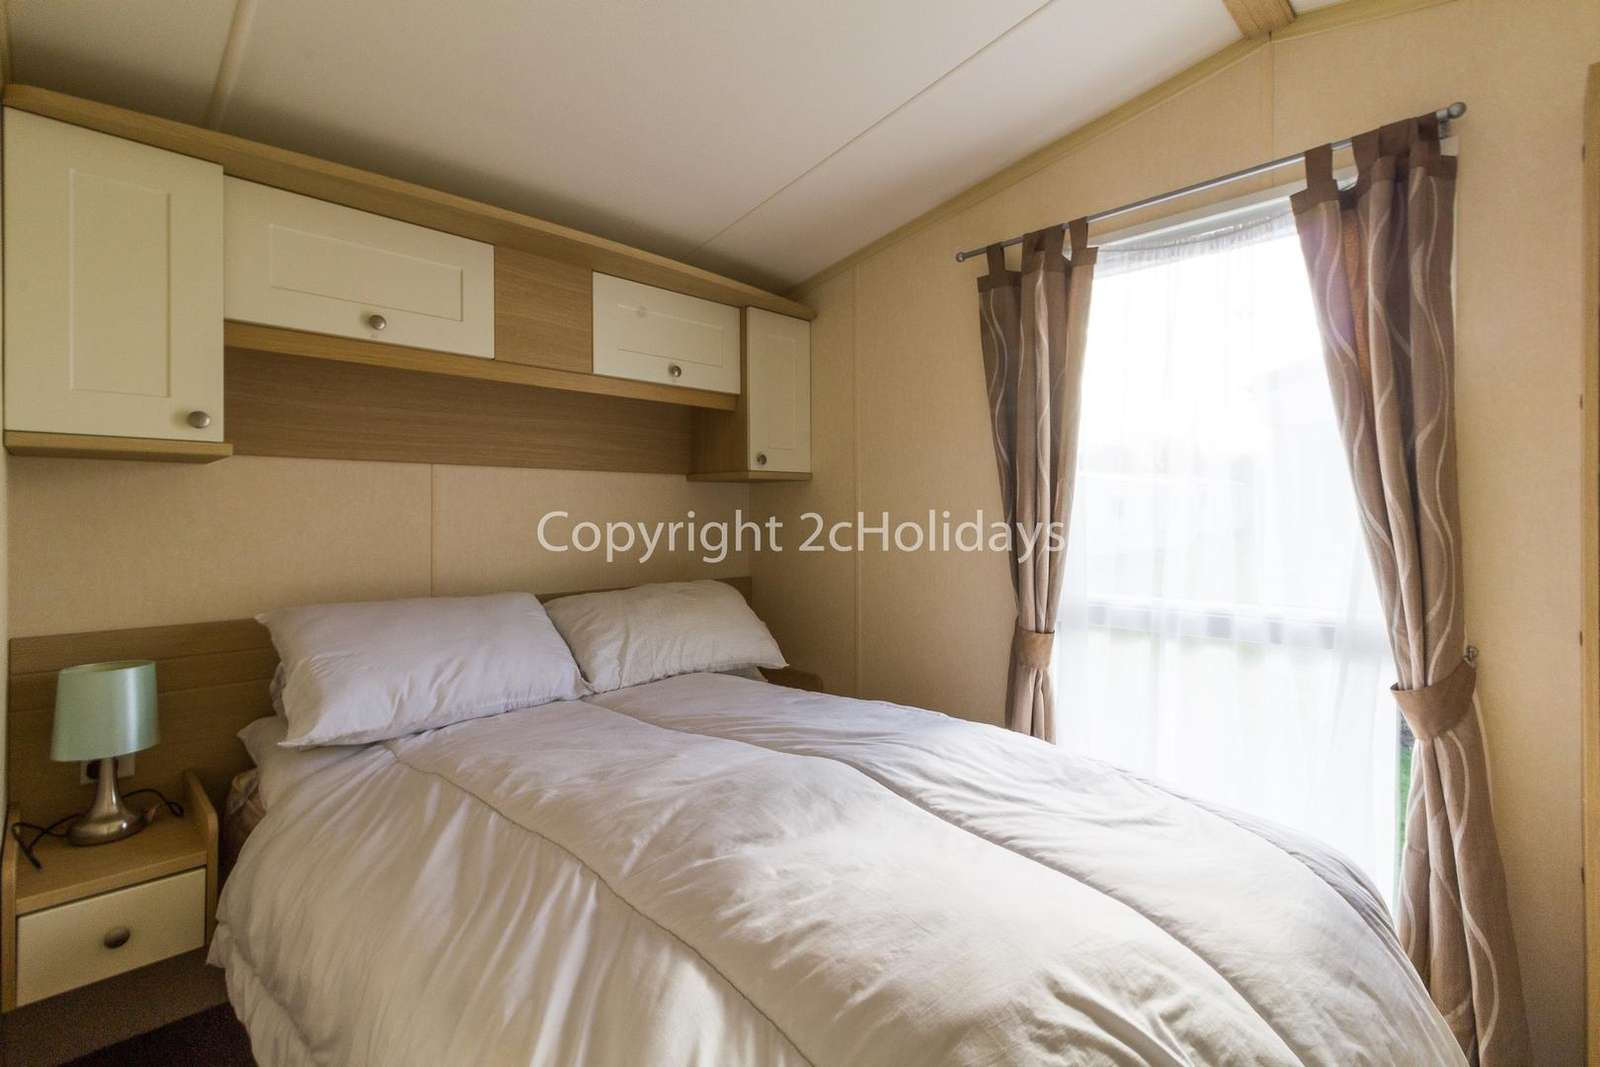 Great size master bedroom with plenty of storage space